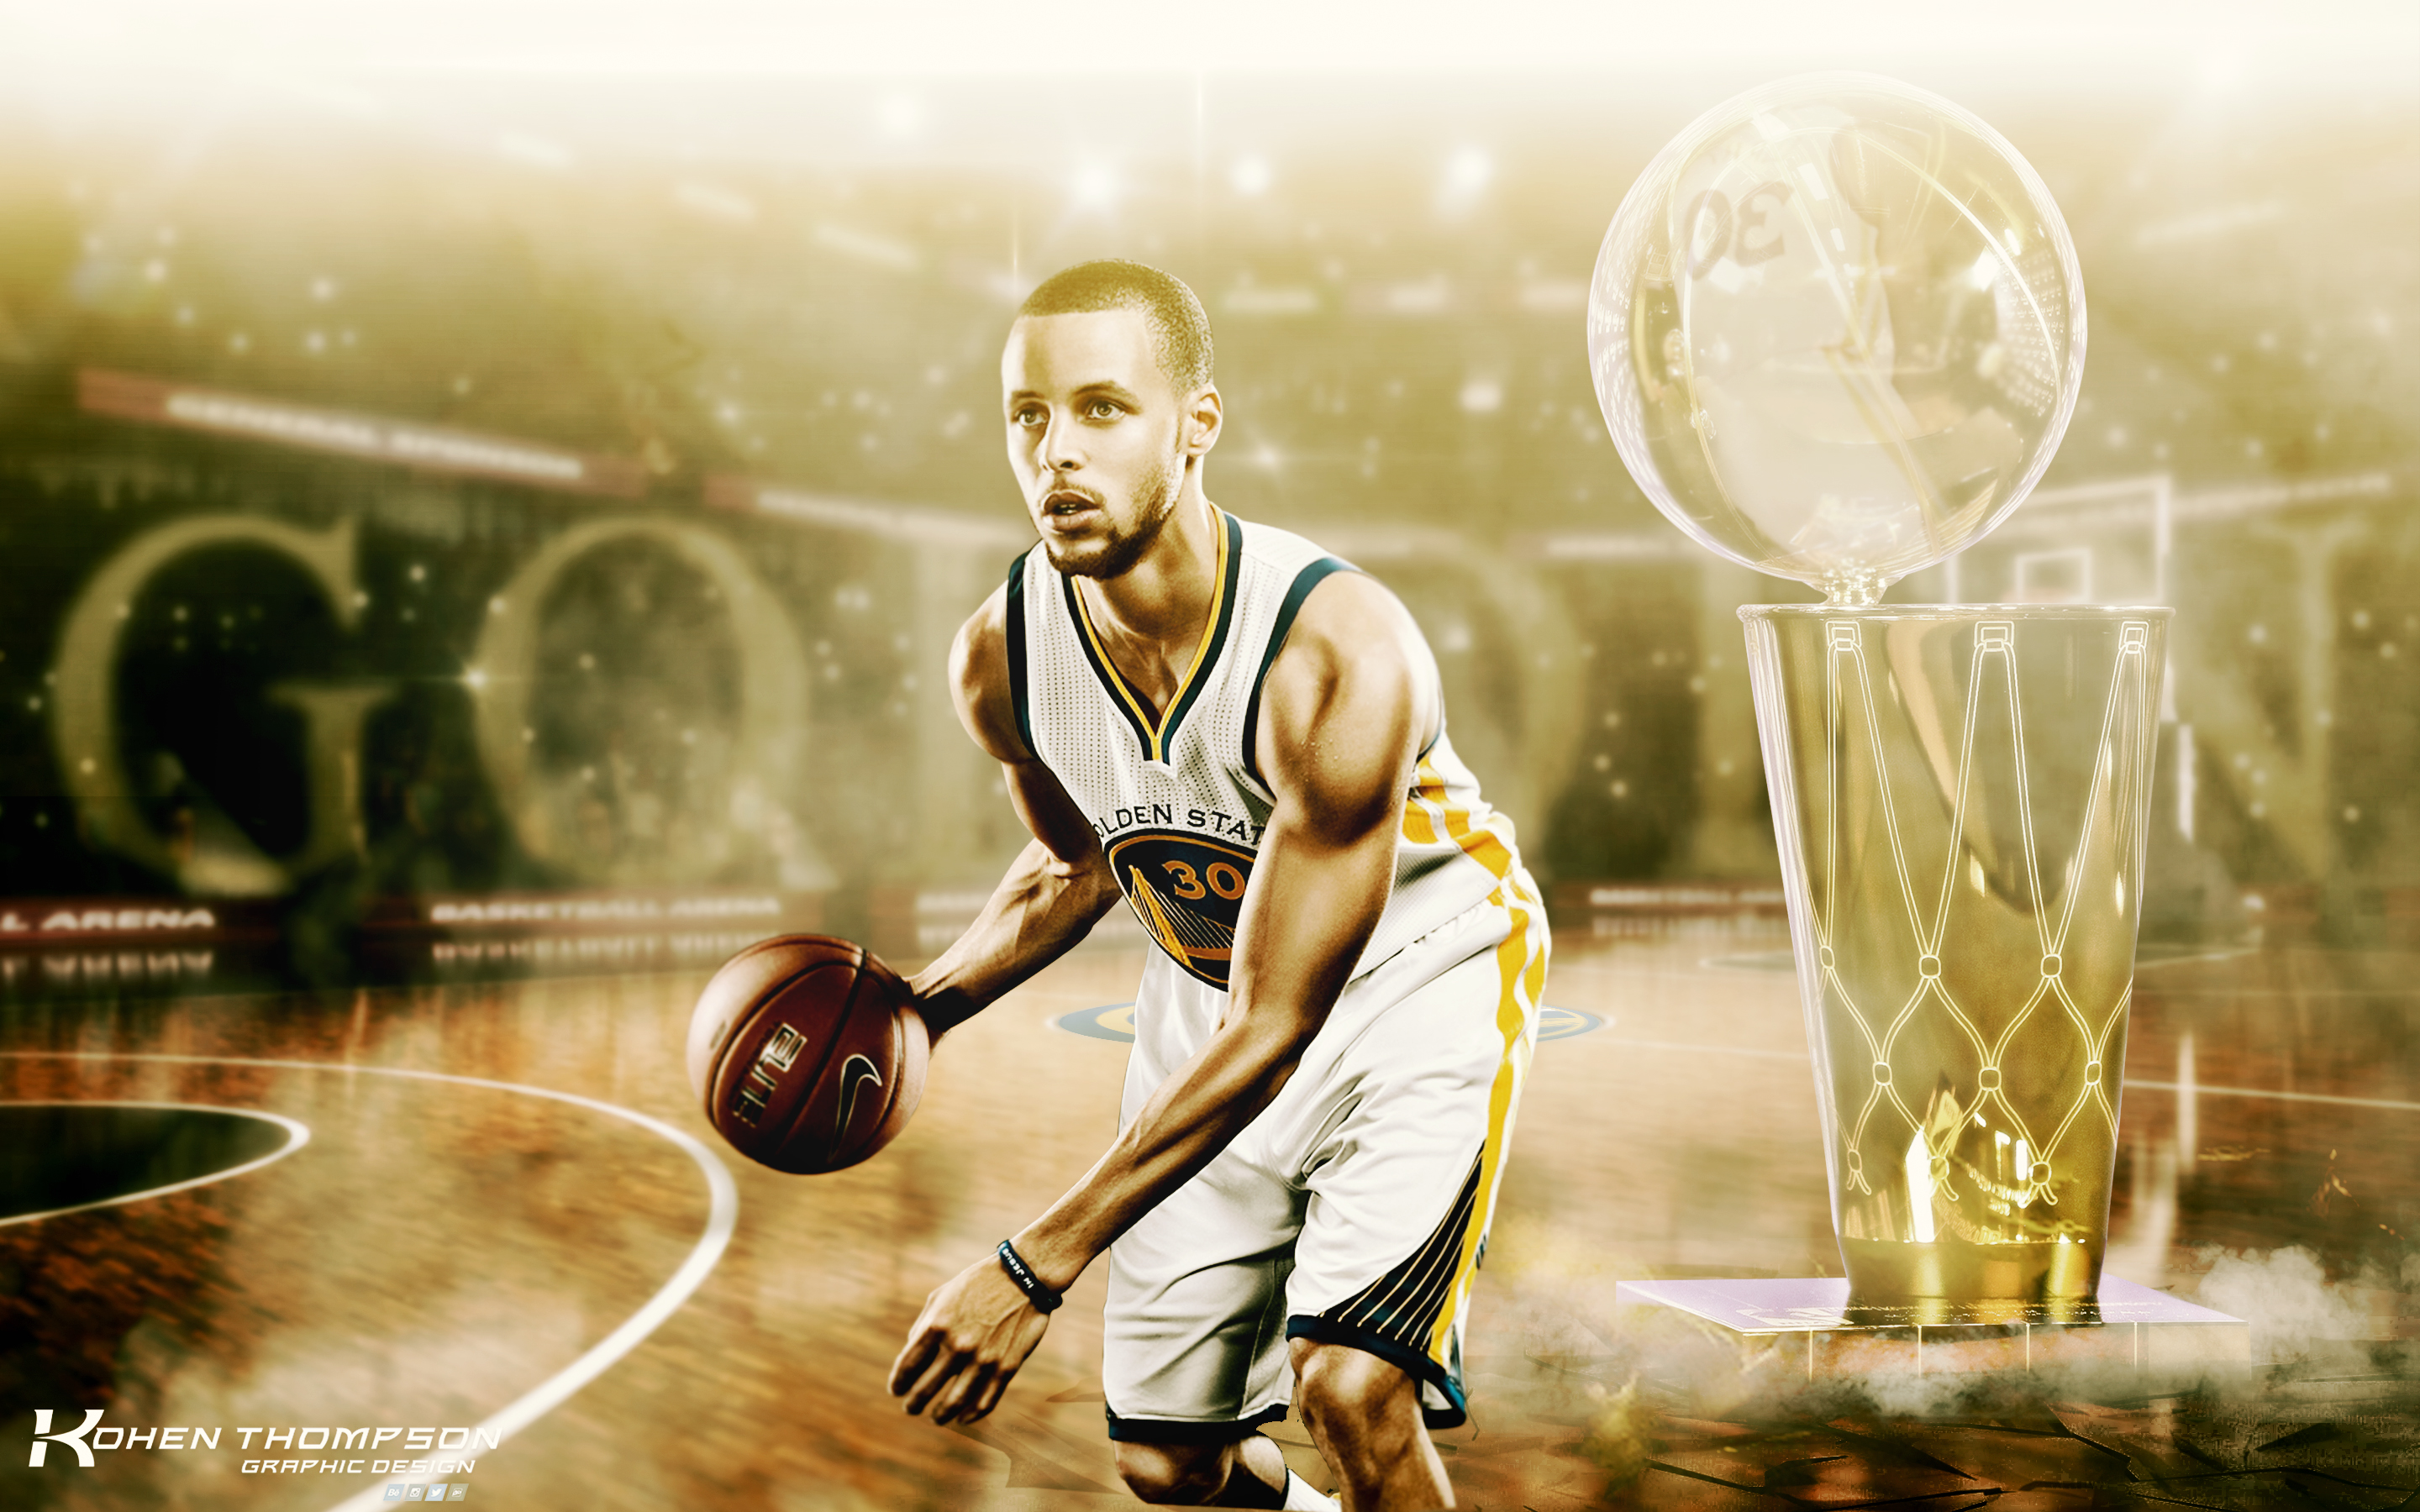 Beautiful Wallpaper Logo Stephen Curry - stephen_curry_wallpaper_by_kohentdesign-d9g8hb2  Trends_152780.jpg